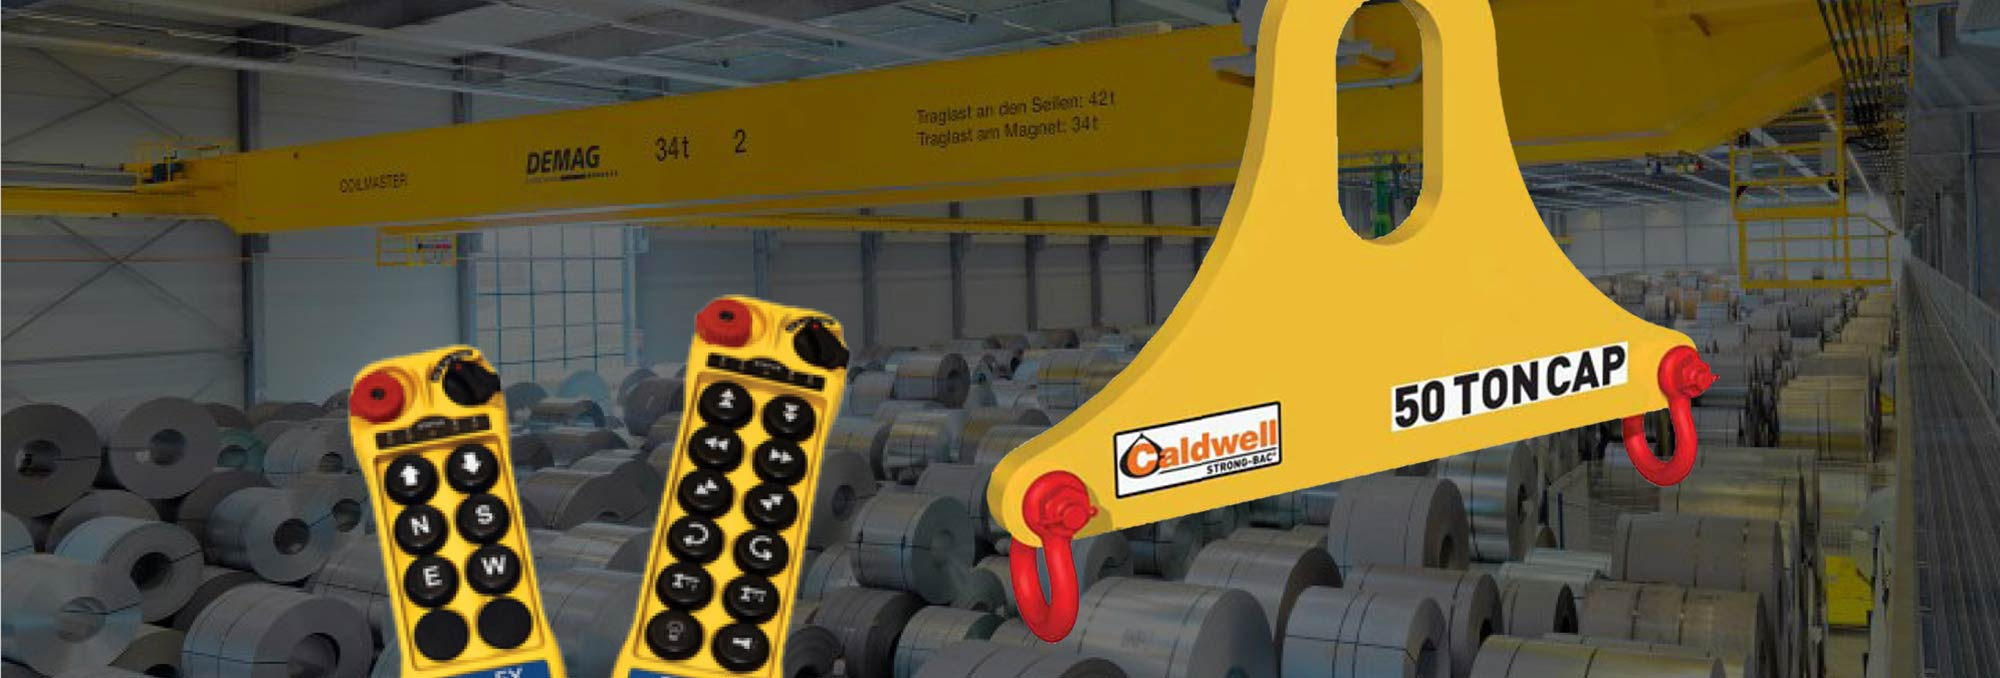 Caldwell lifting products and controls